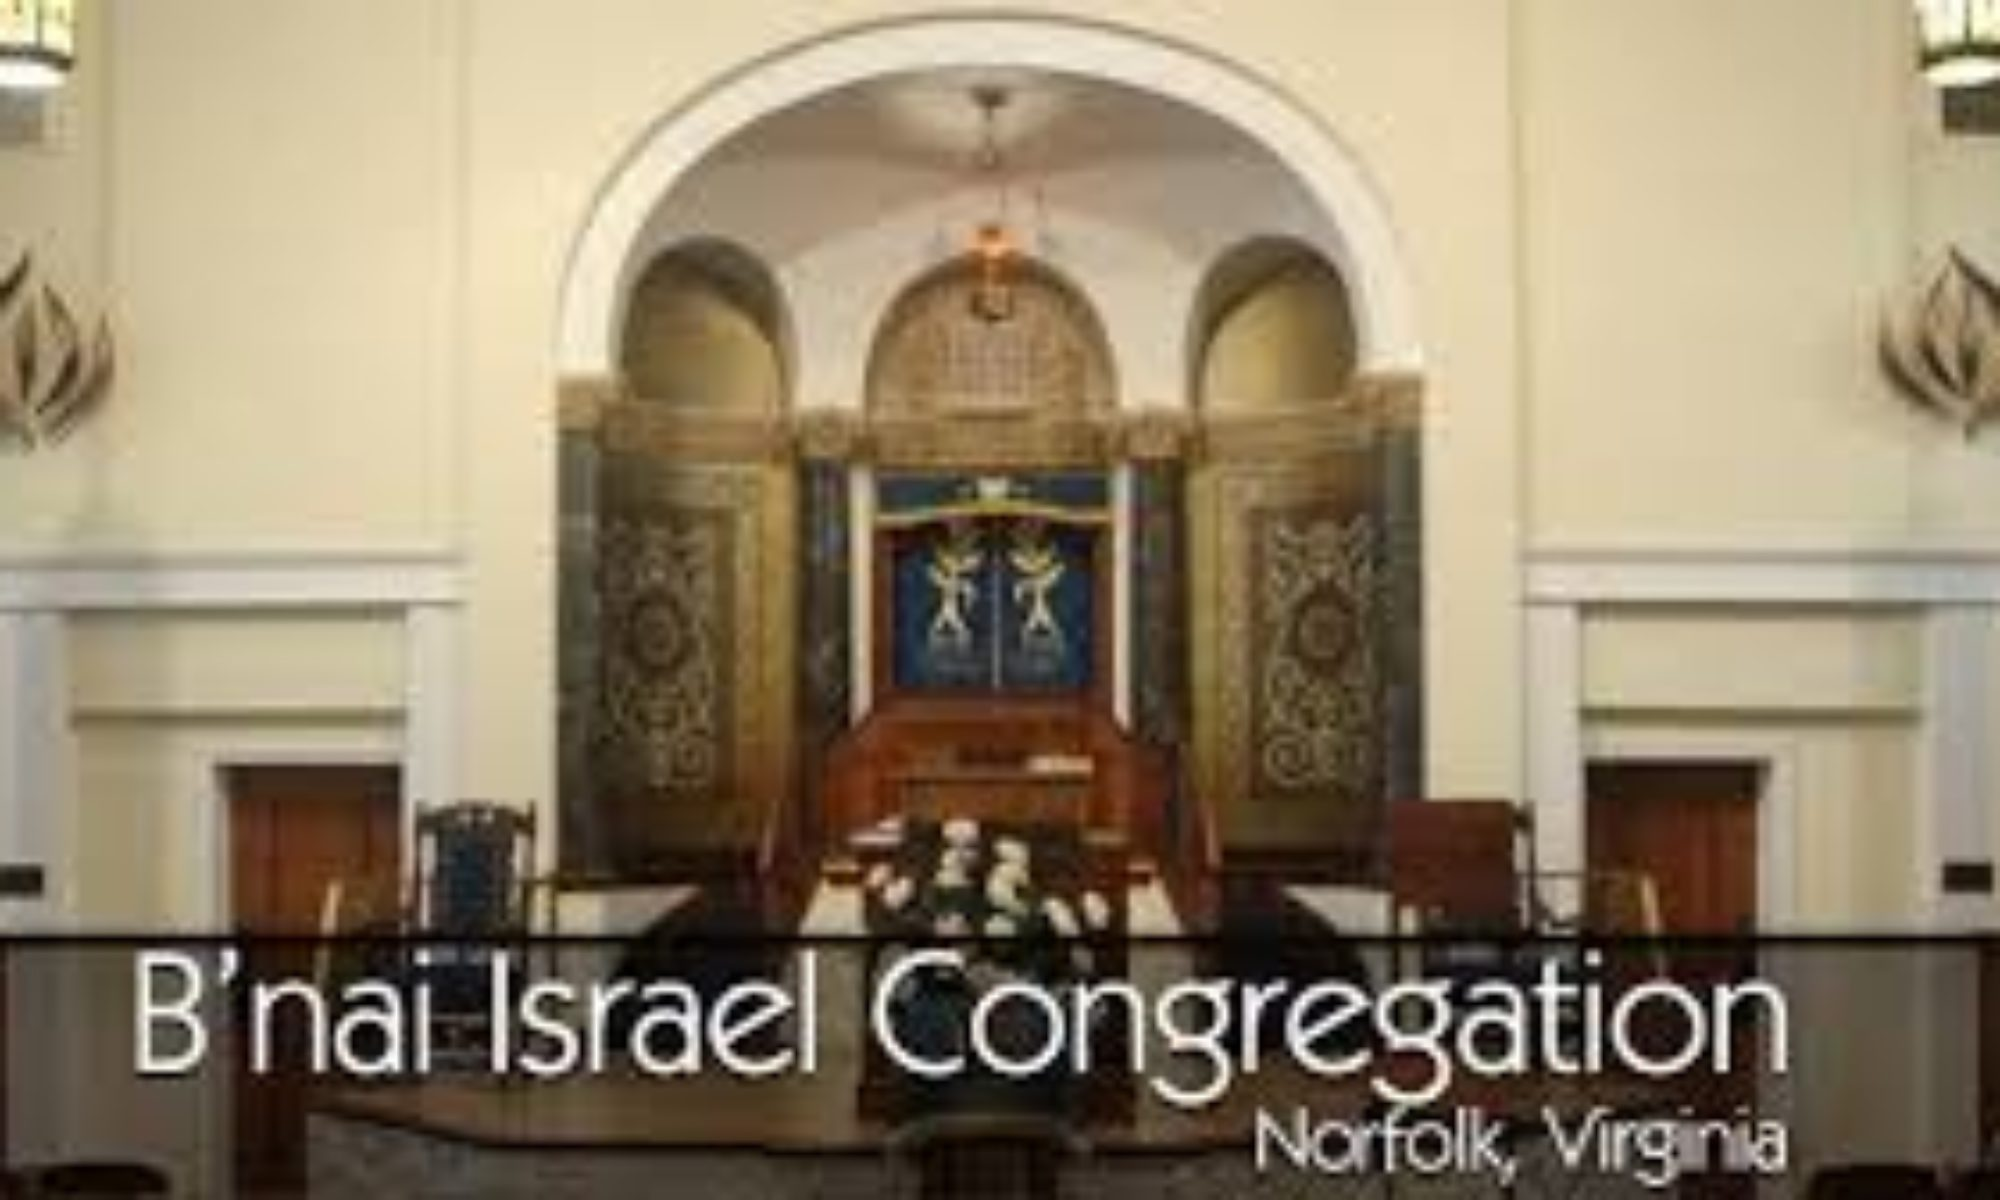 B'nai Israel Congregation